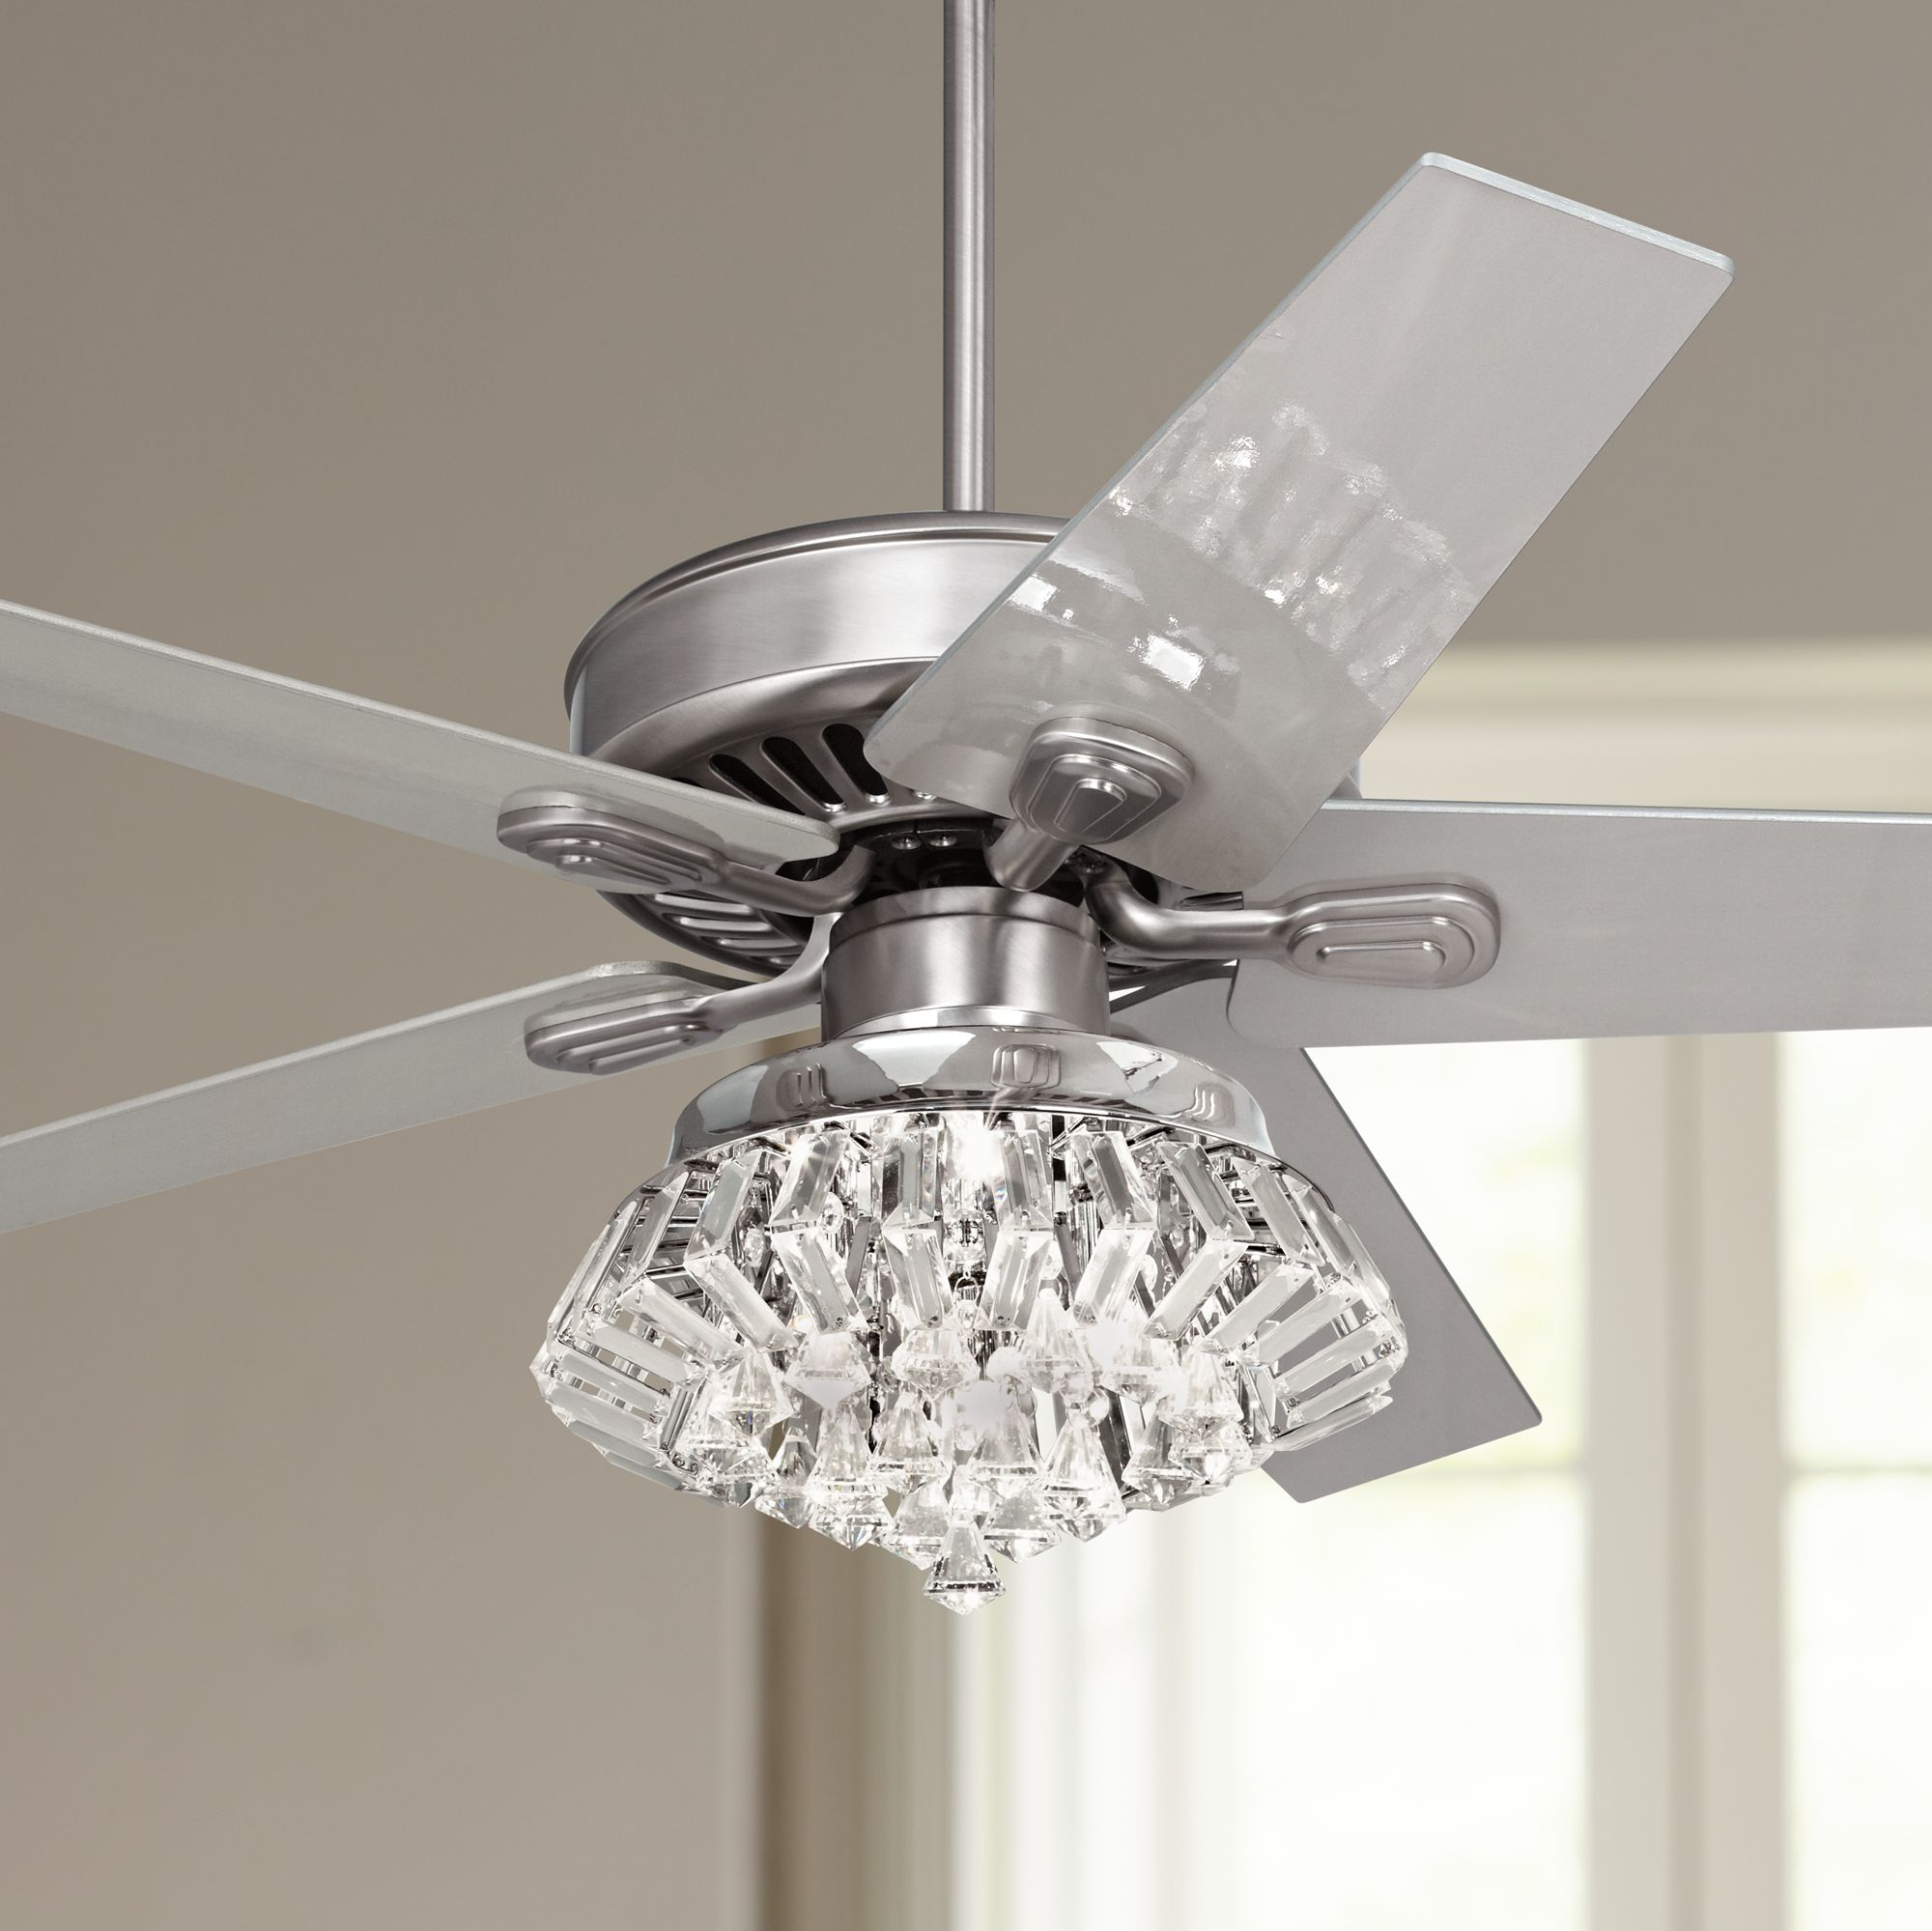 Ceiling fans with lighting 52 NAPWMKP